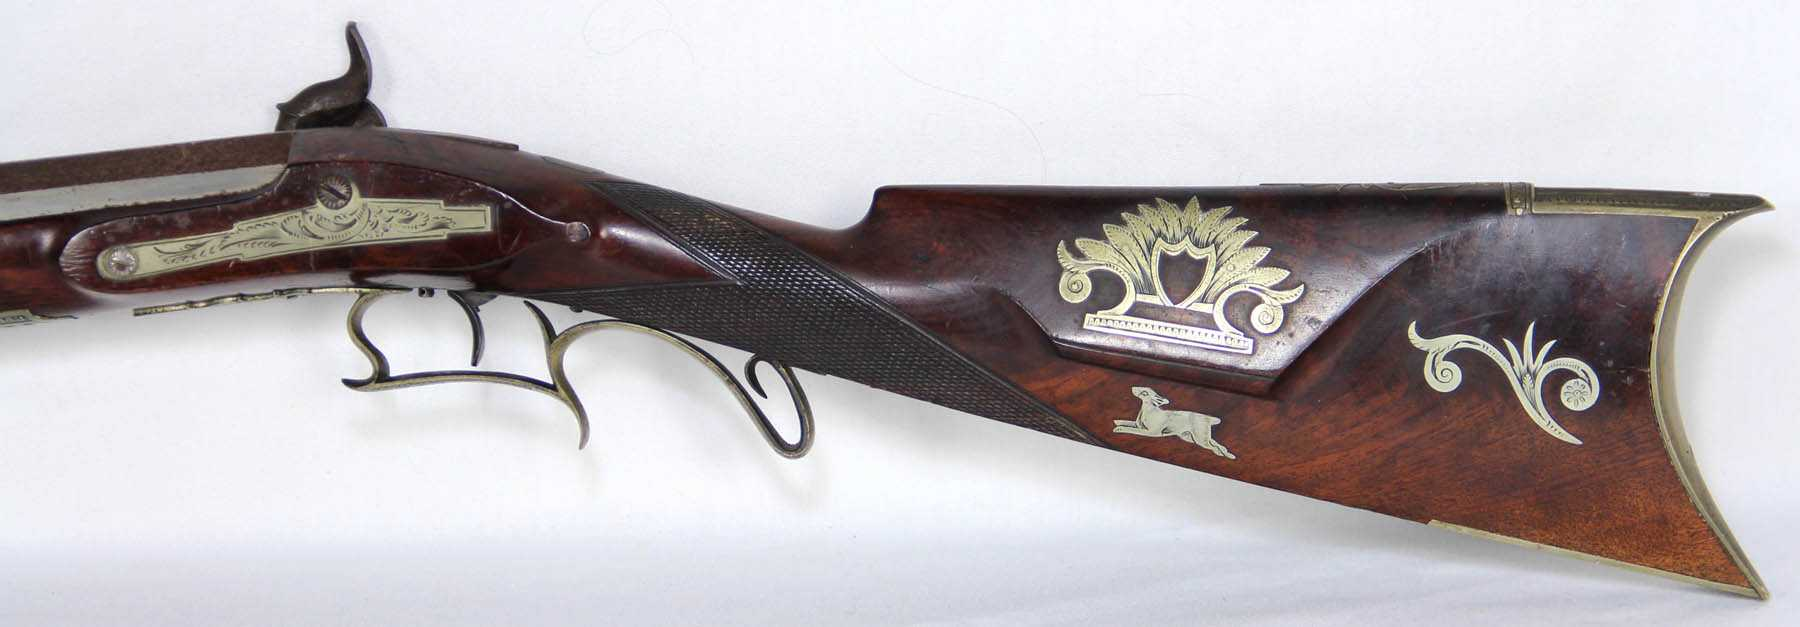 Ornately Decorated Half Stock Percussion Cap Target Rifle